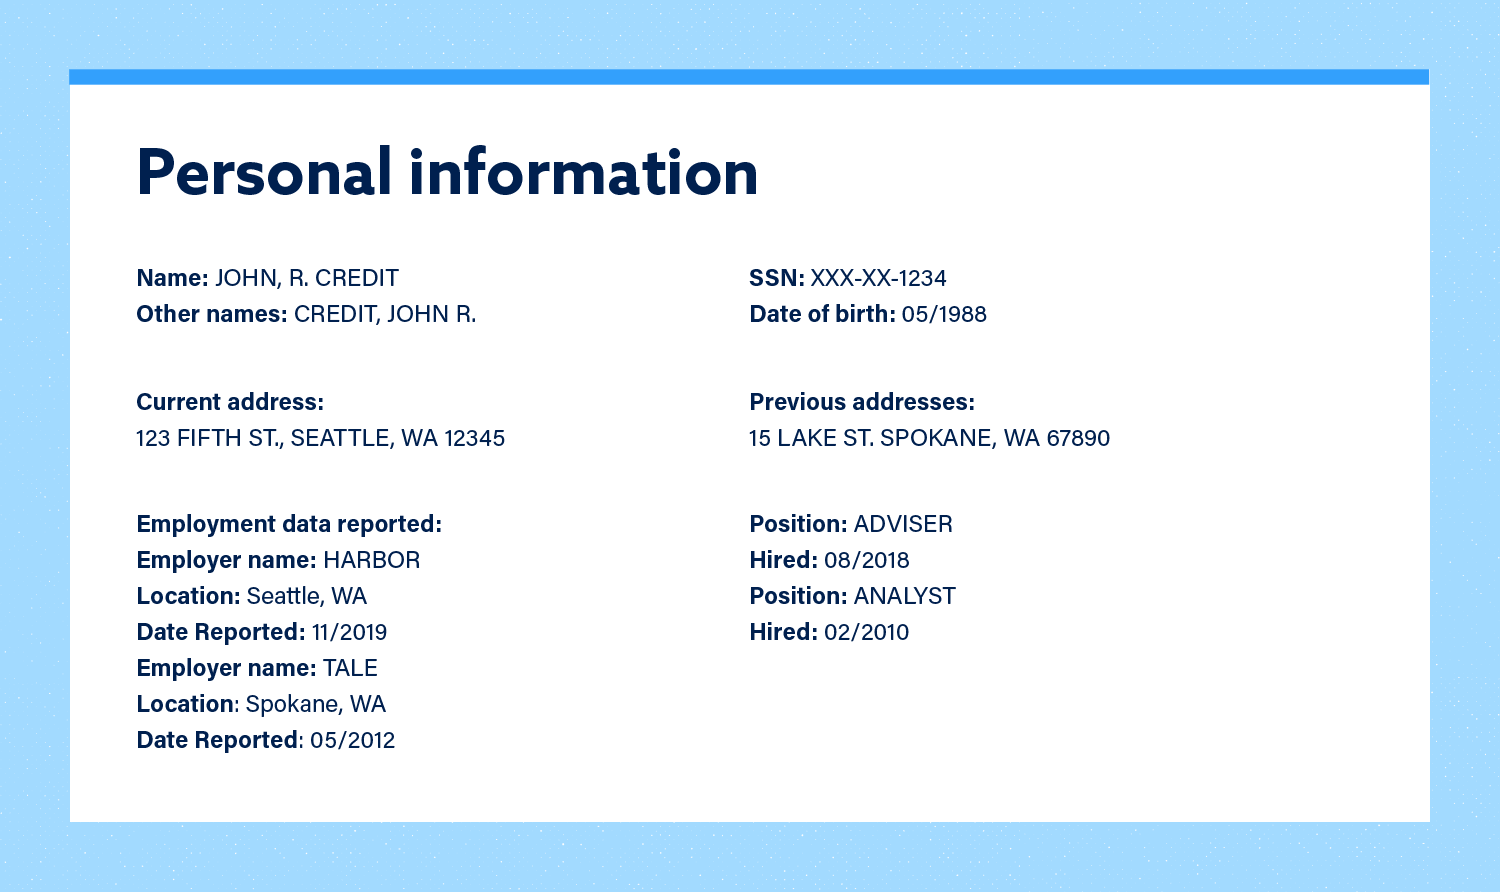 Personal Information Image